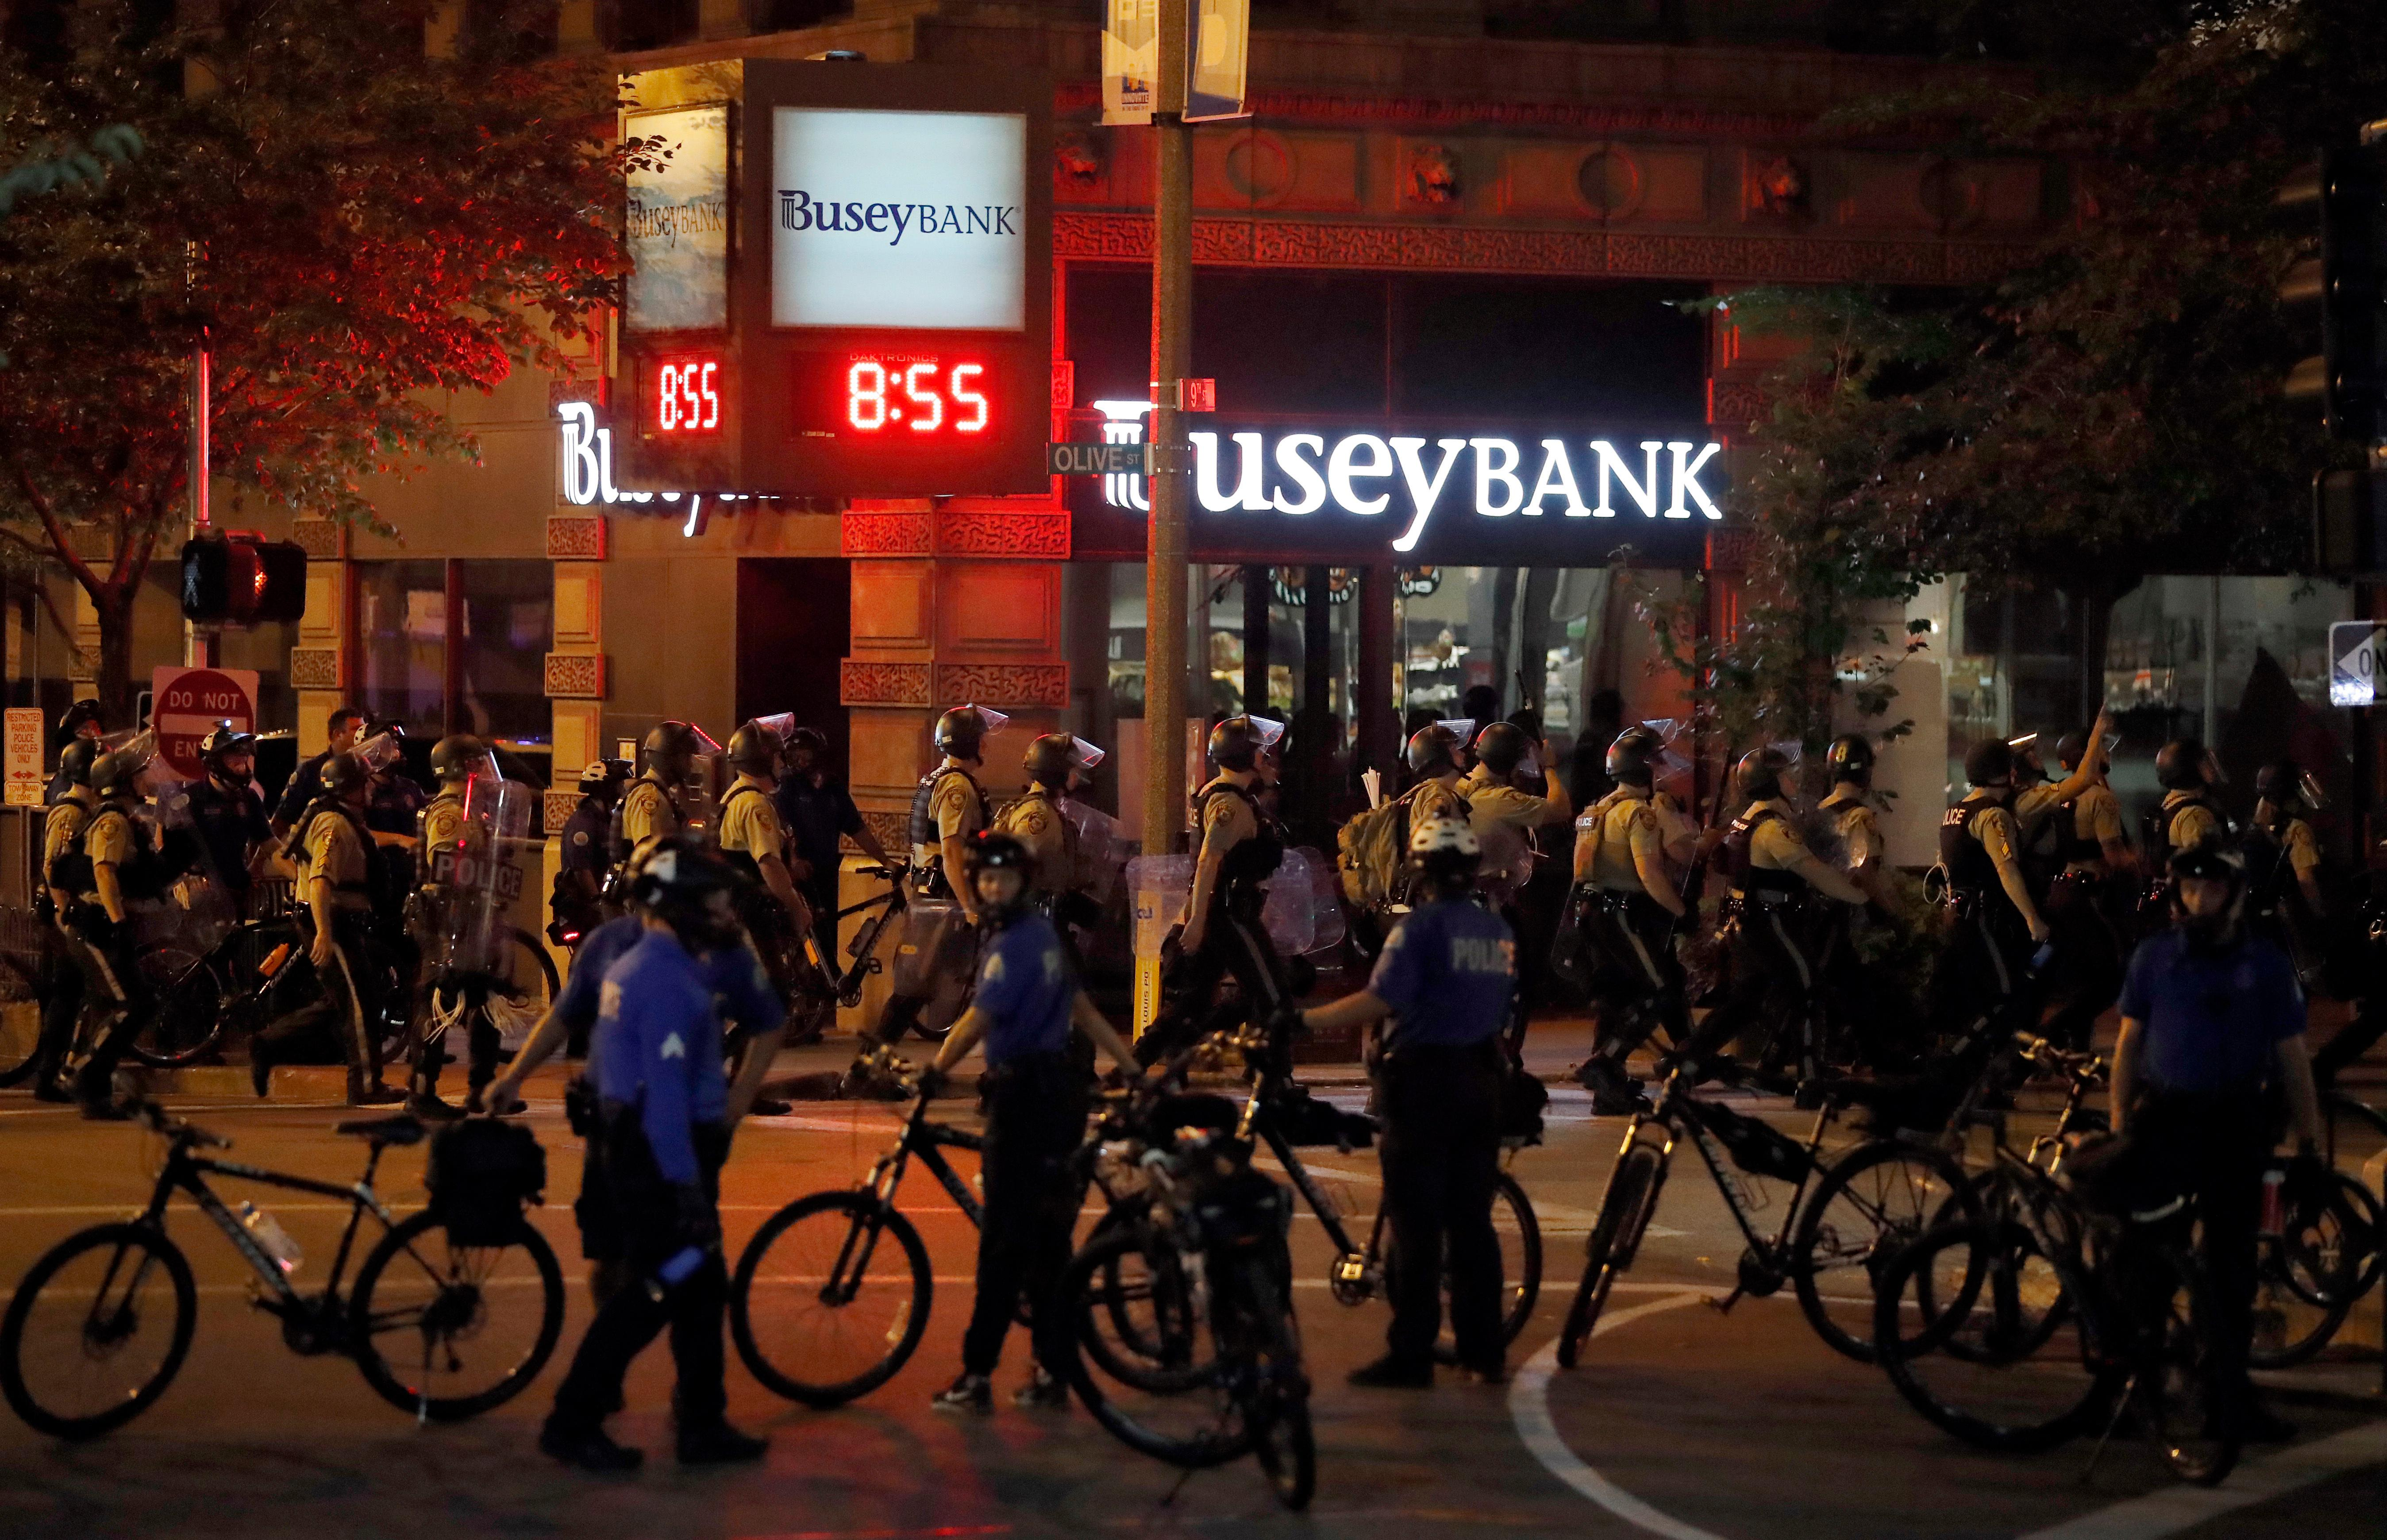 Police gather as demonstrators march in response to a not guilty verdict in the trial of former St. Louis police officer Jason Stockley, Sunday, Sept. 17, 2017, in St. Louis. Stockley was acquitted in the 2011 killing of a black man following a high-speed chase. (AP Photo/Jeff Roberson)